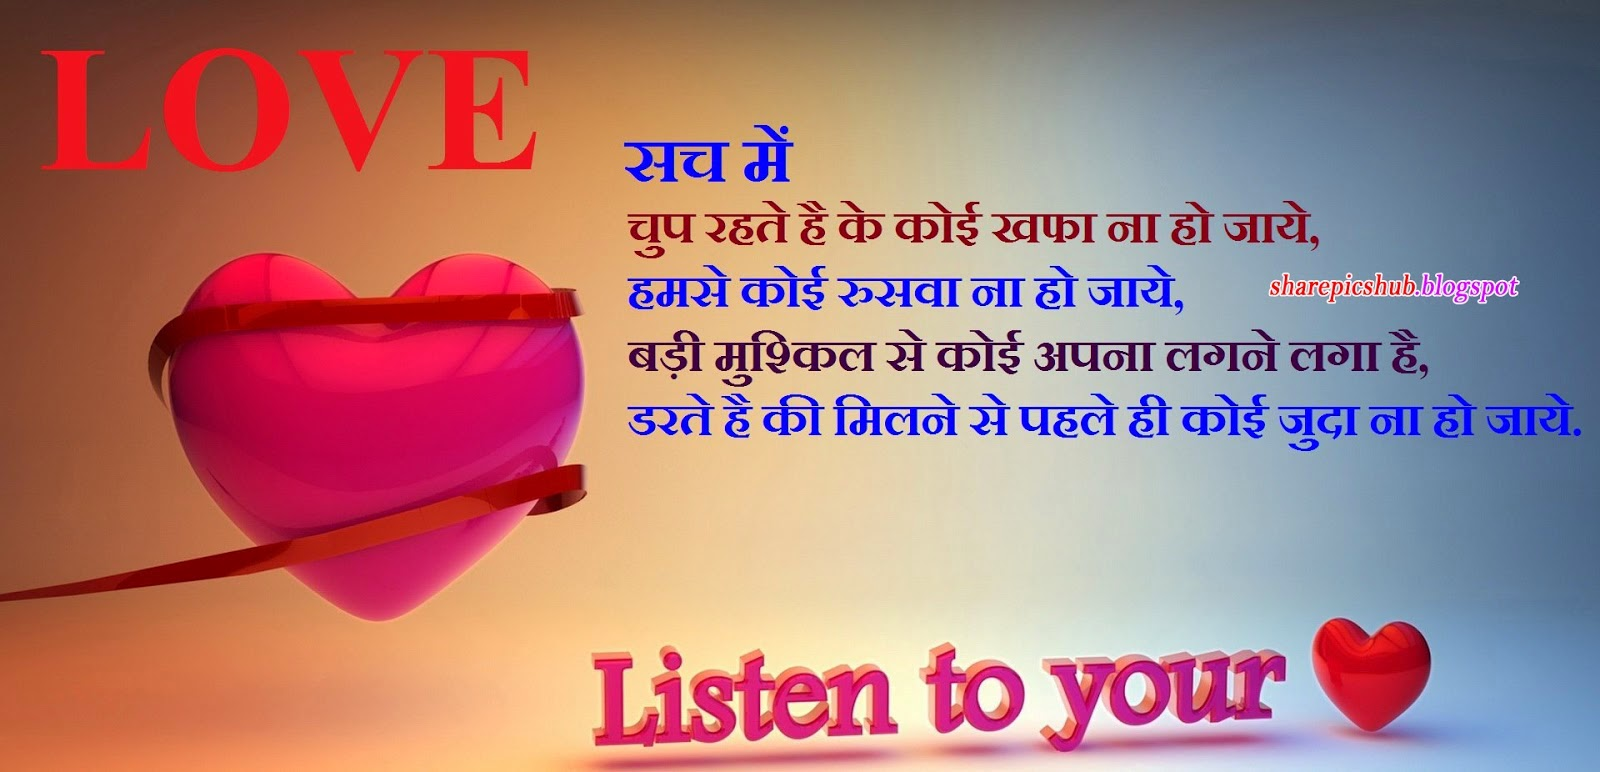 Wallpaper download love shayri - Judai Shayari In Hindi Wallpaper